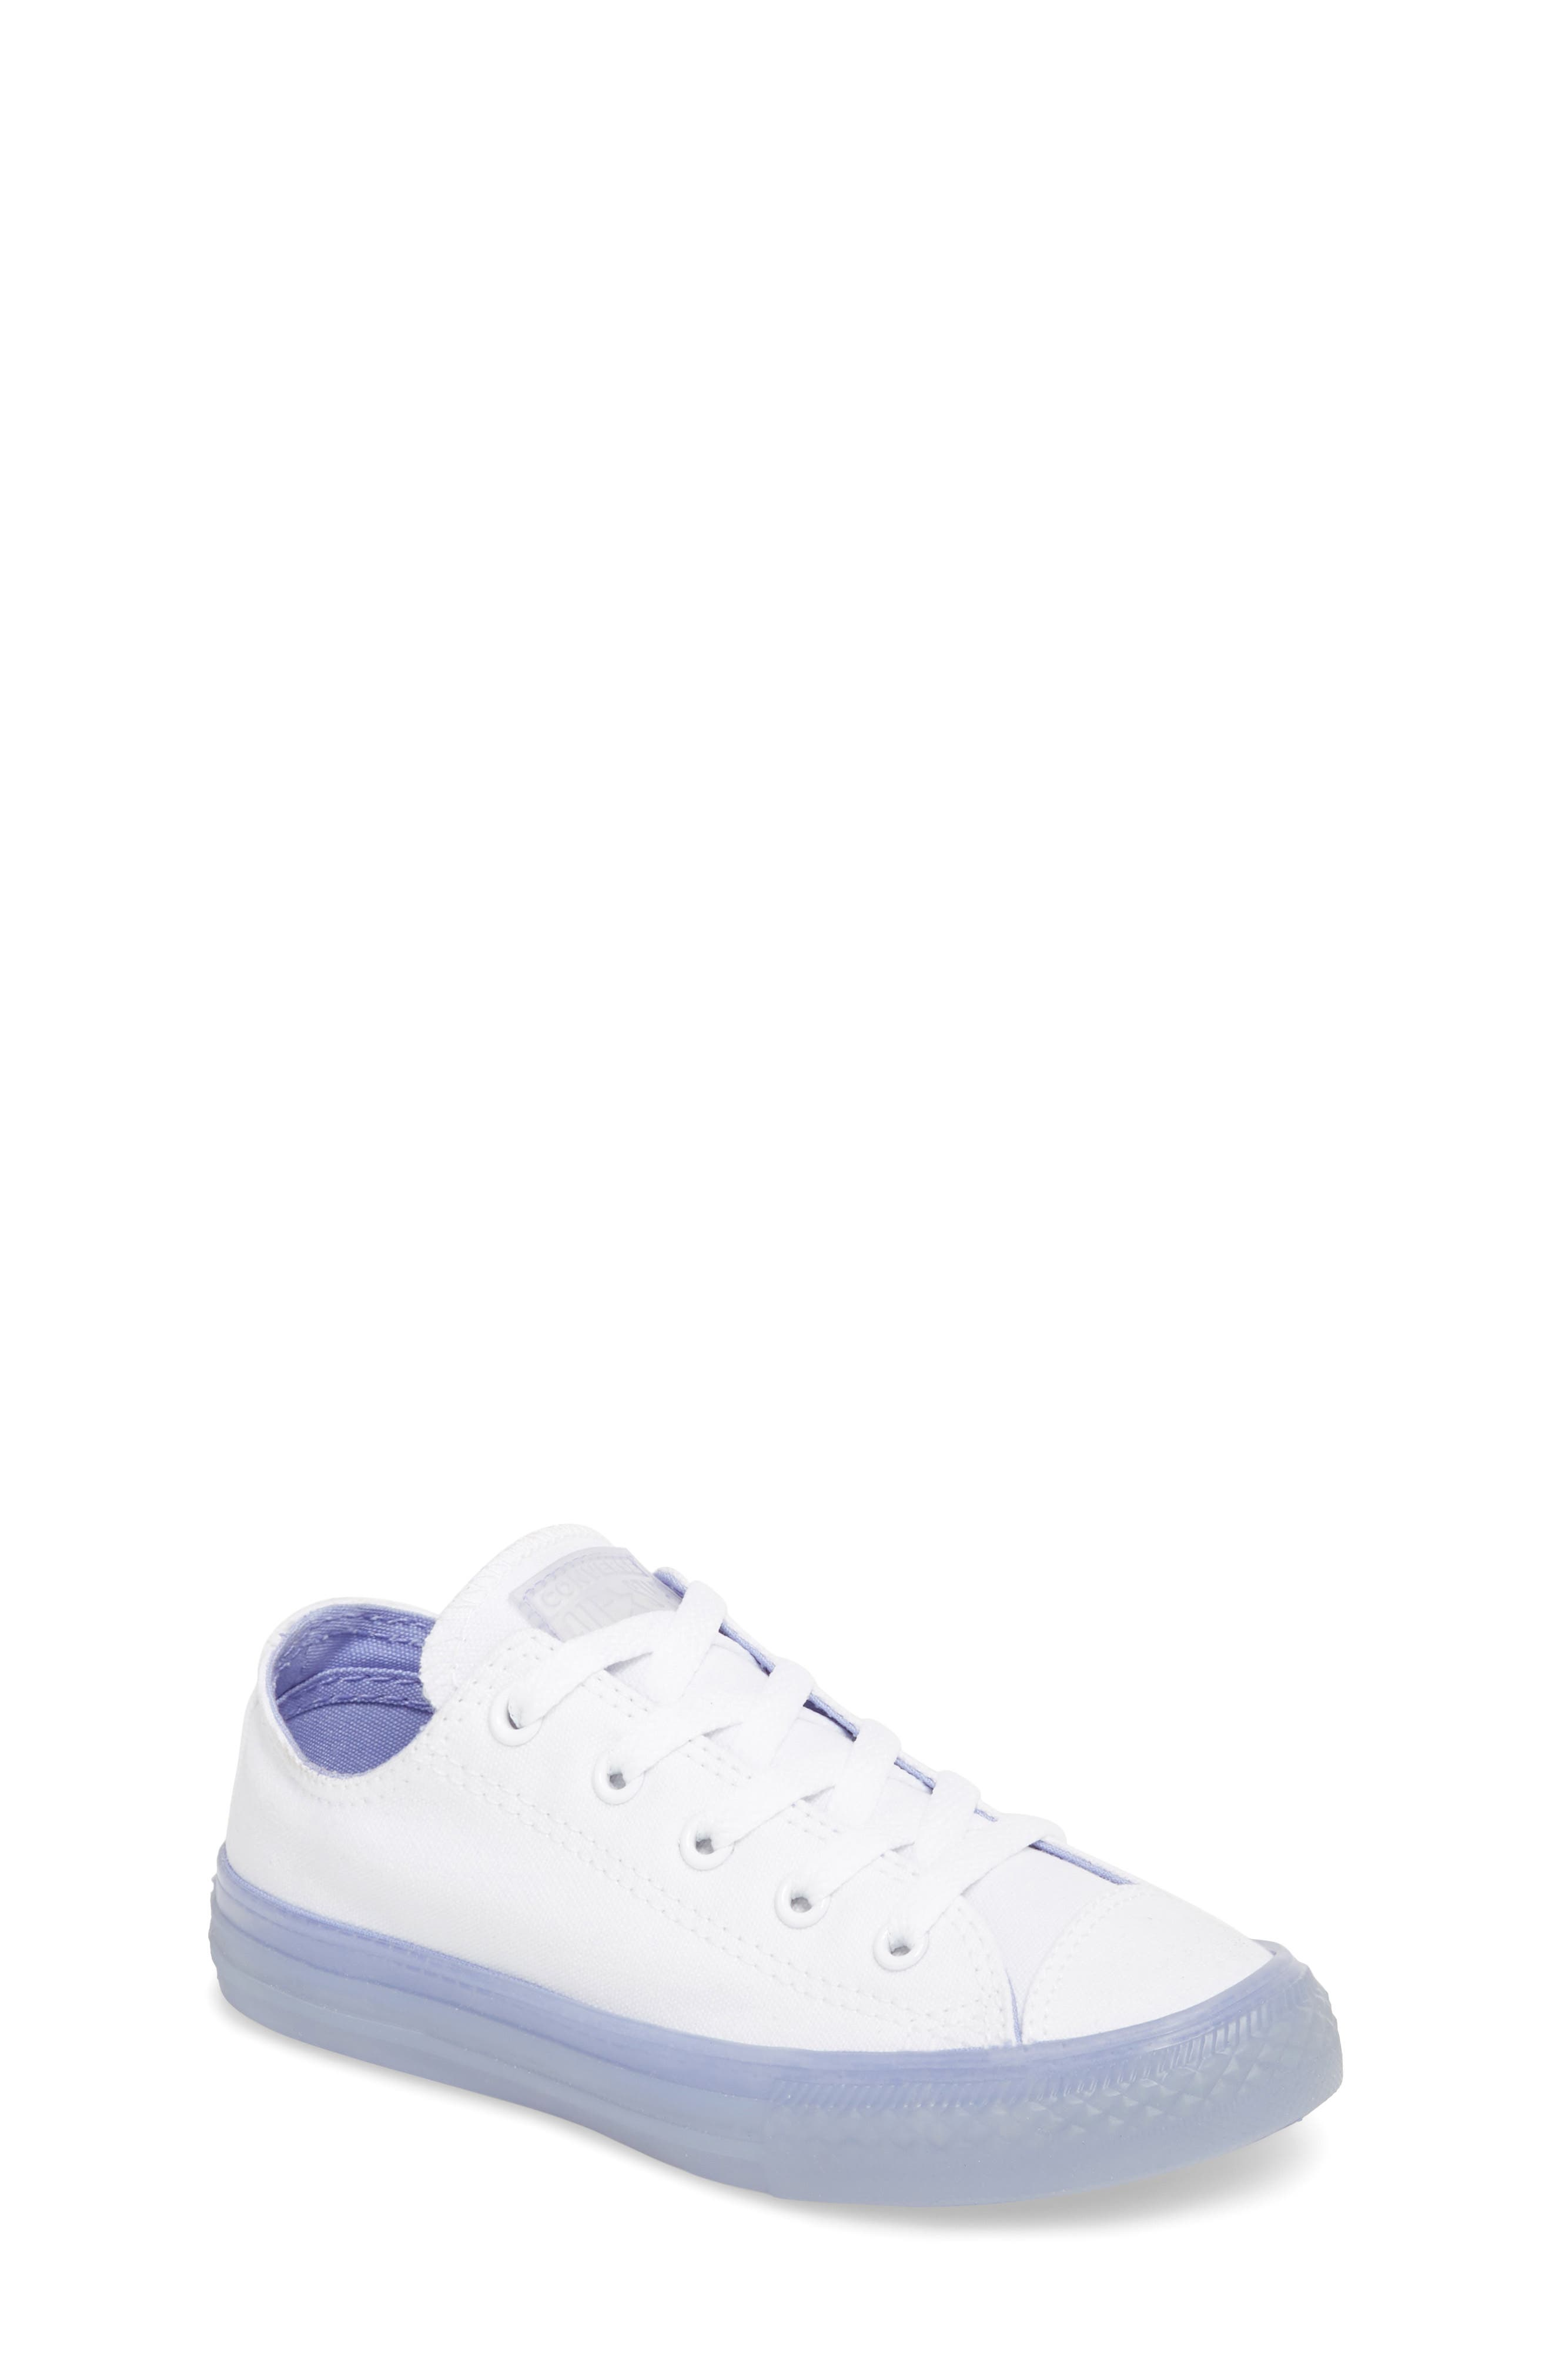 Chuck Taylor<sup>®</sup> All Star<sup>®</sup> Jelly Low Top Sneaker,                             Main thumbnail 1, color,                             503